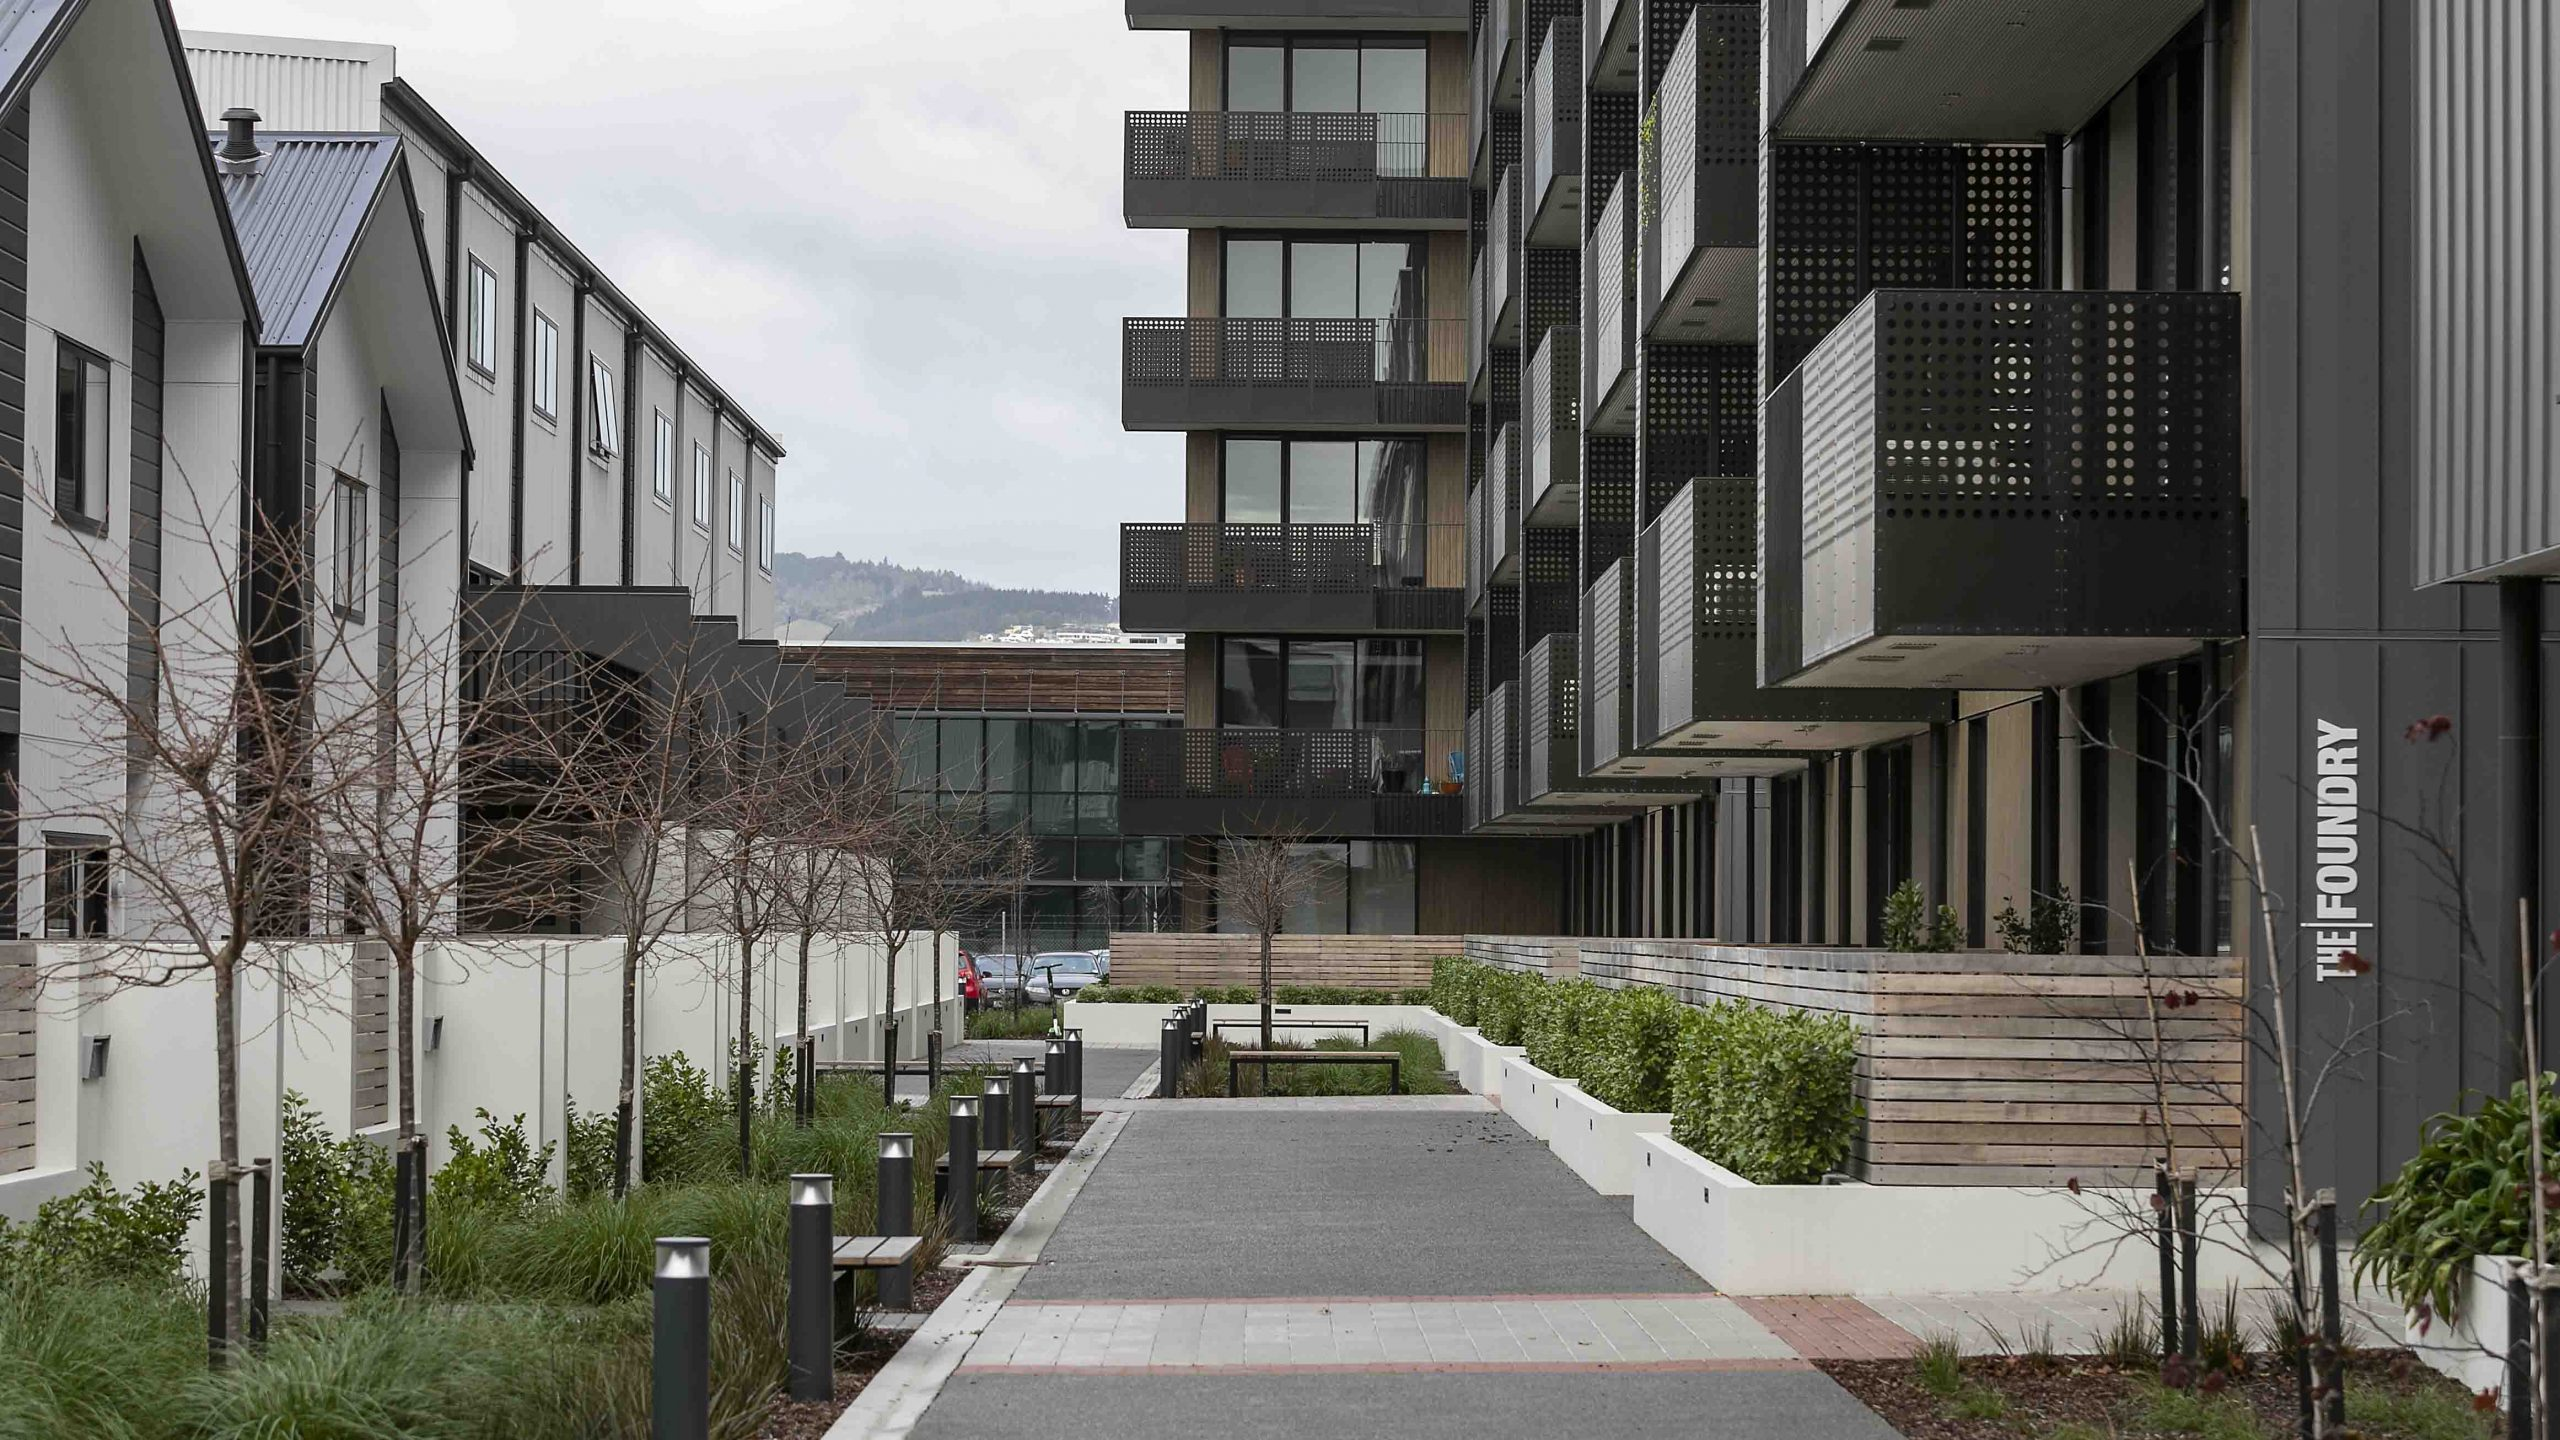 Rebate scheme to continue for new central city residential developments